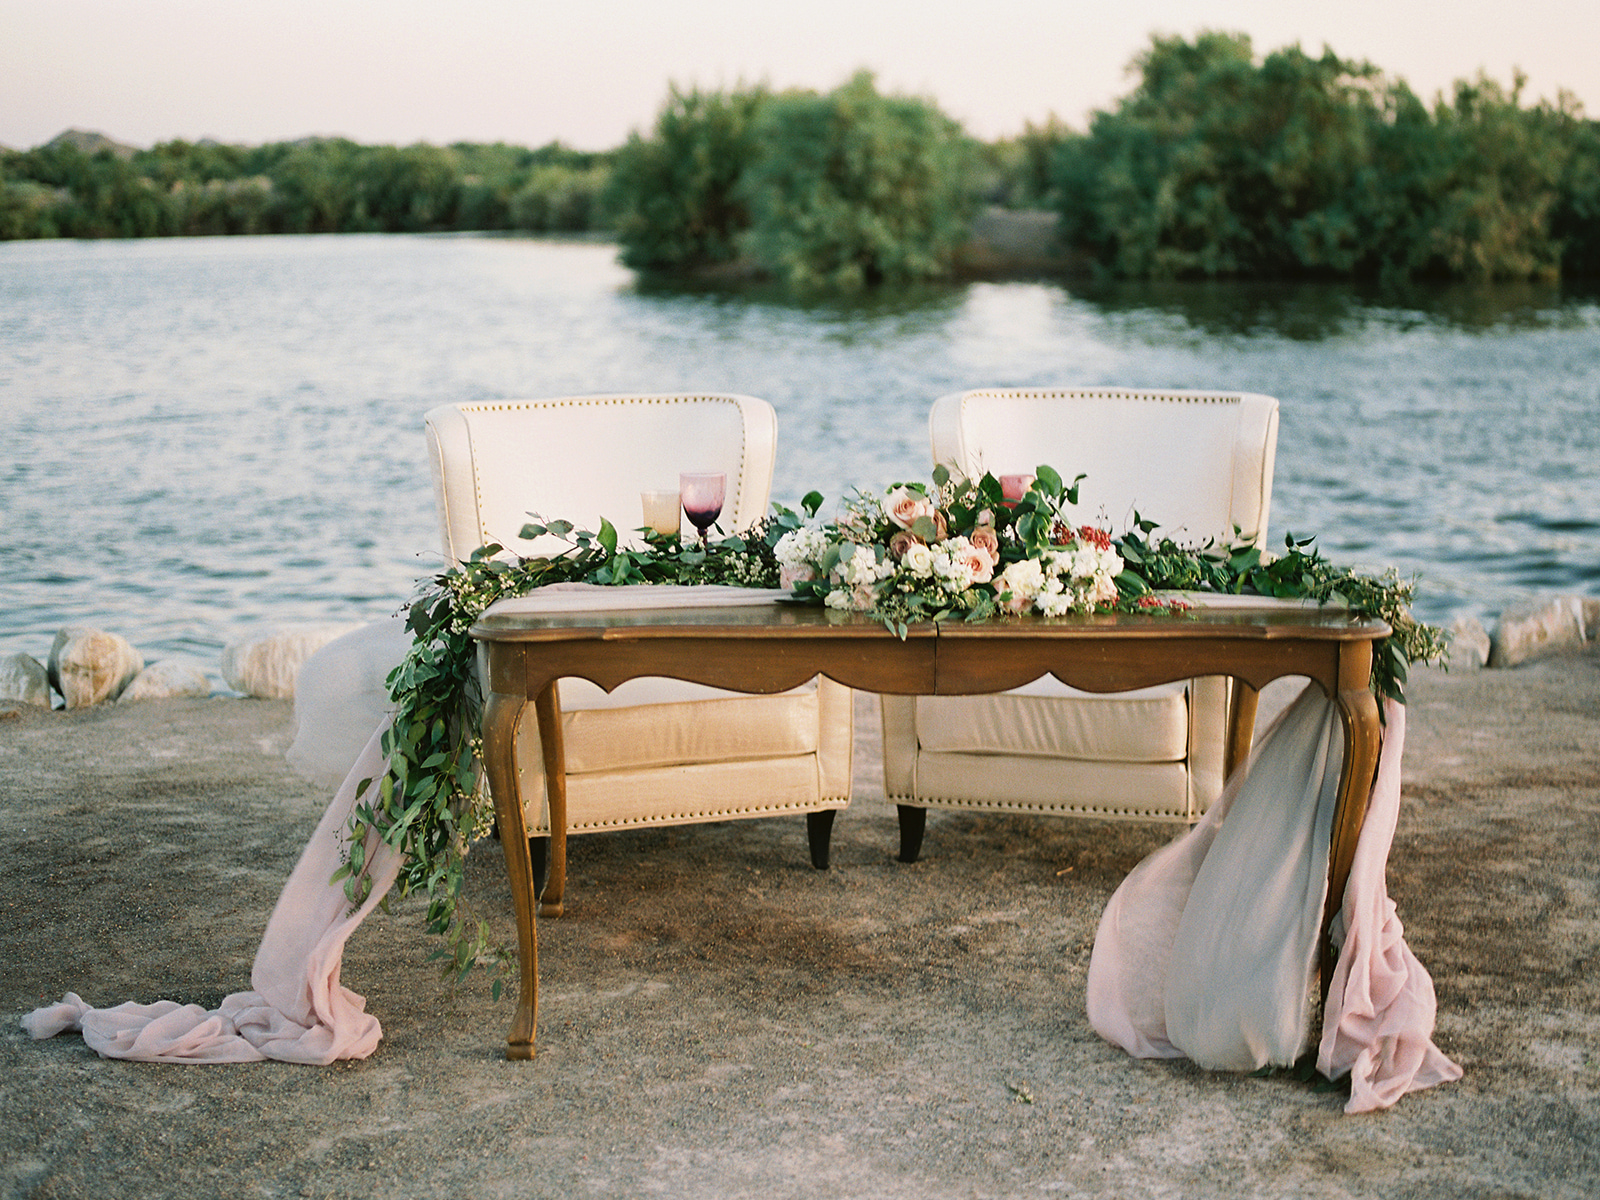 Romantic Table for Two on Beach